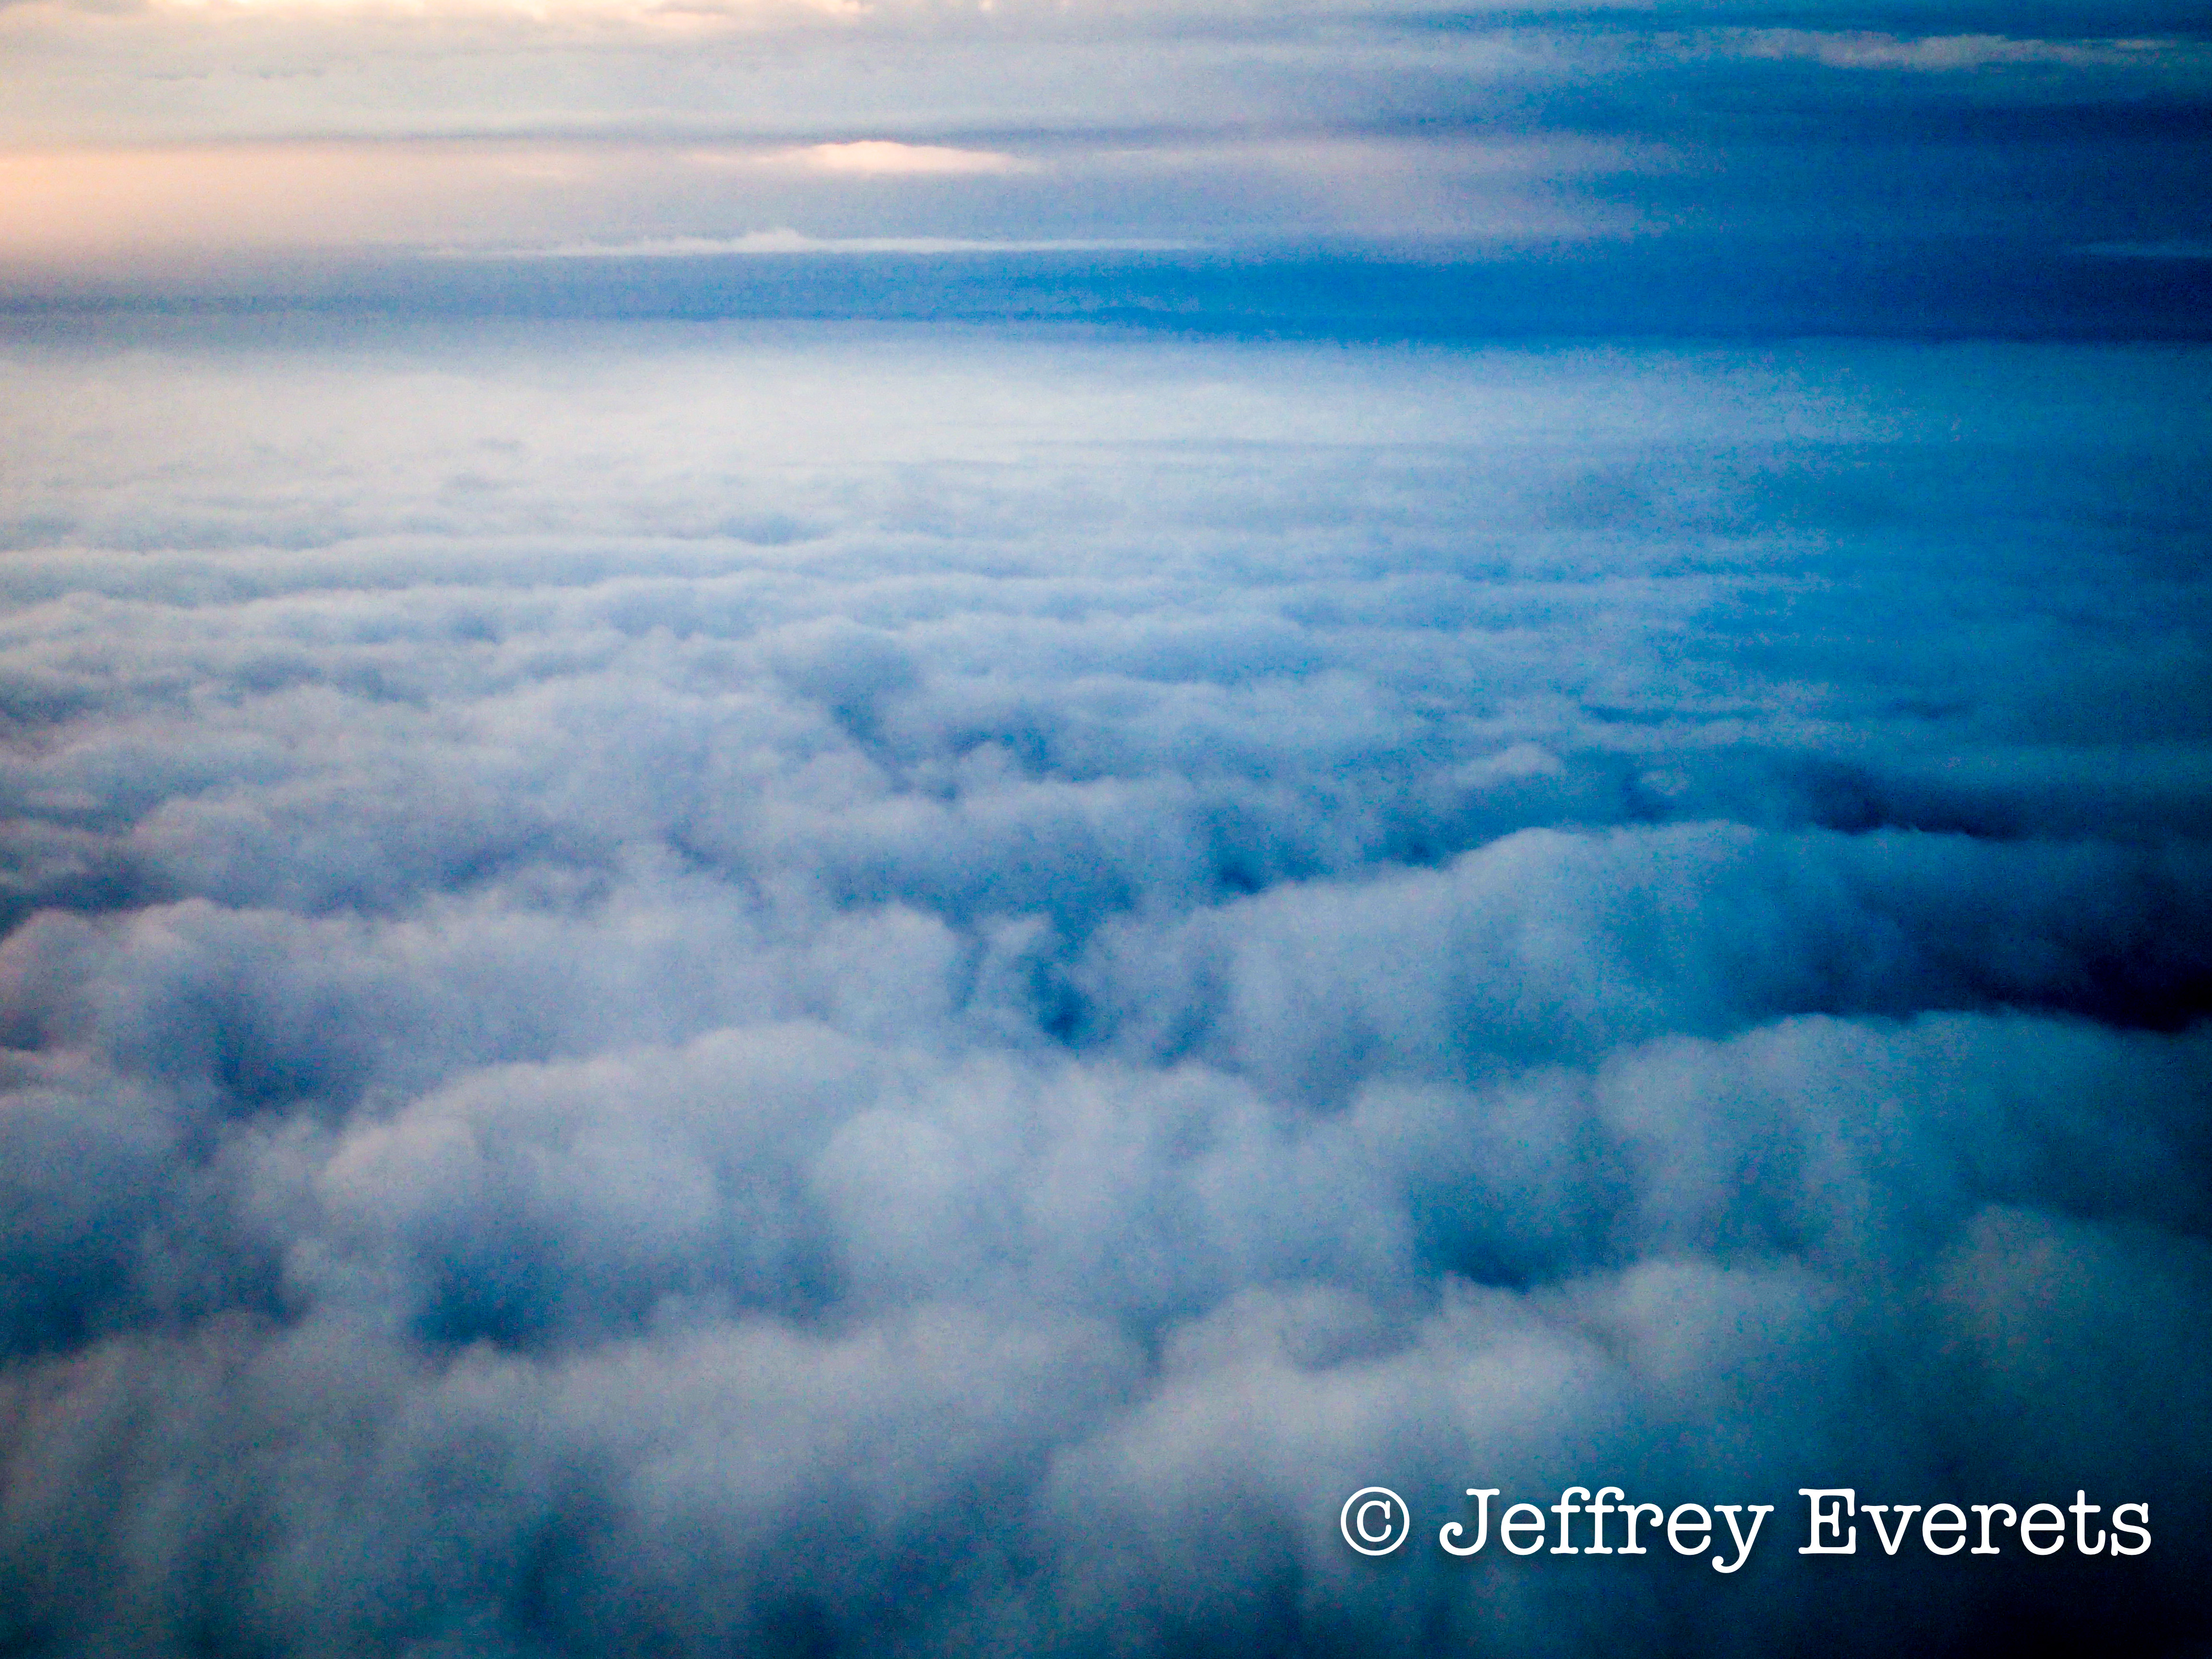 Looking down on clouds